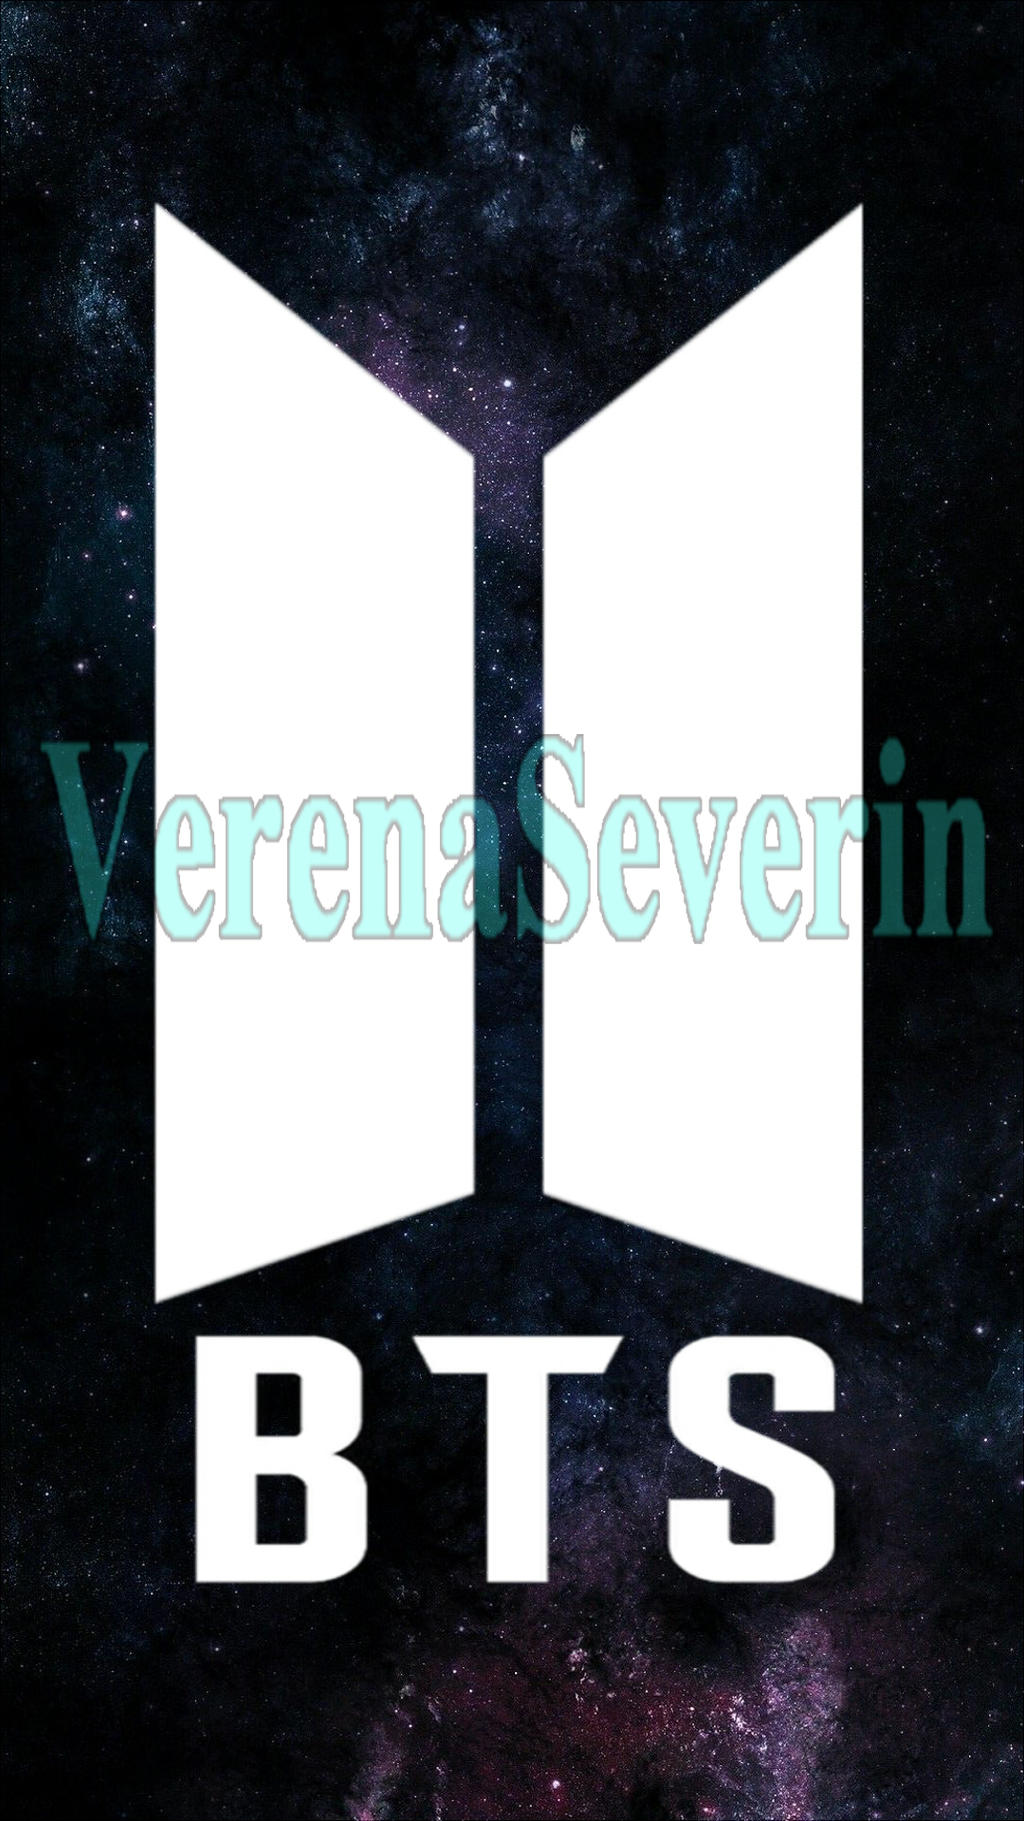 bts dark galaxy wallpaper by verenaseverin dcm6u8v